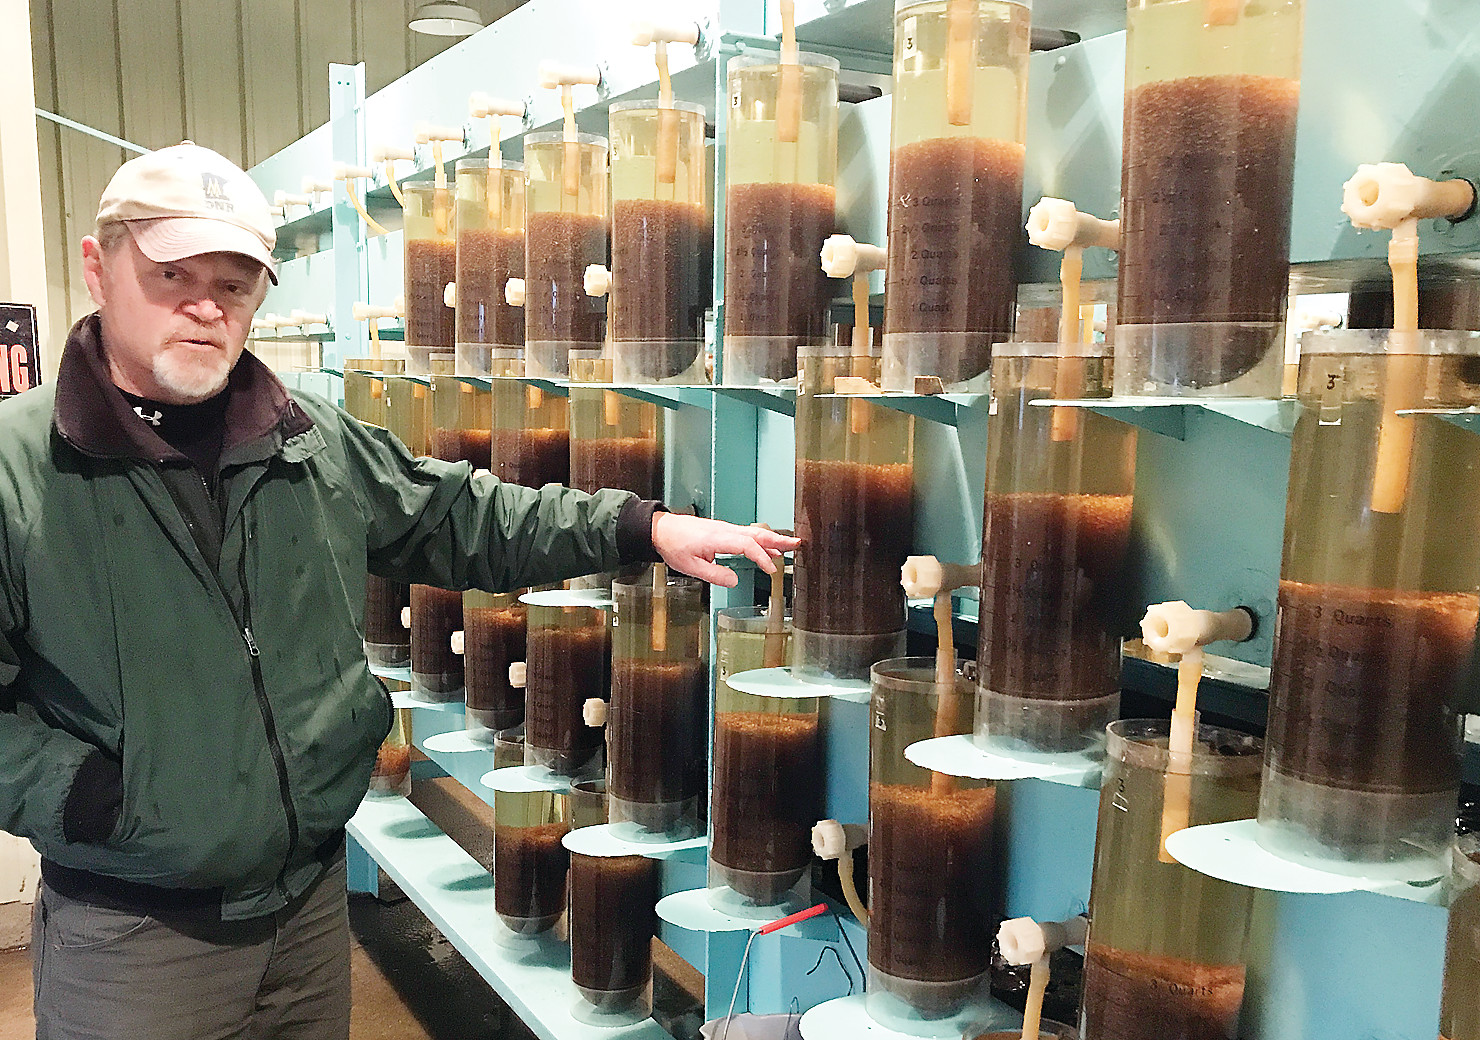 Pike River Hatchery Manager Jeff Eibler checks on incubating walleye eggs. The eggs should be hatching in a week to ten days.